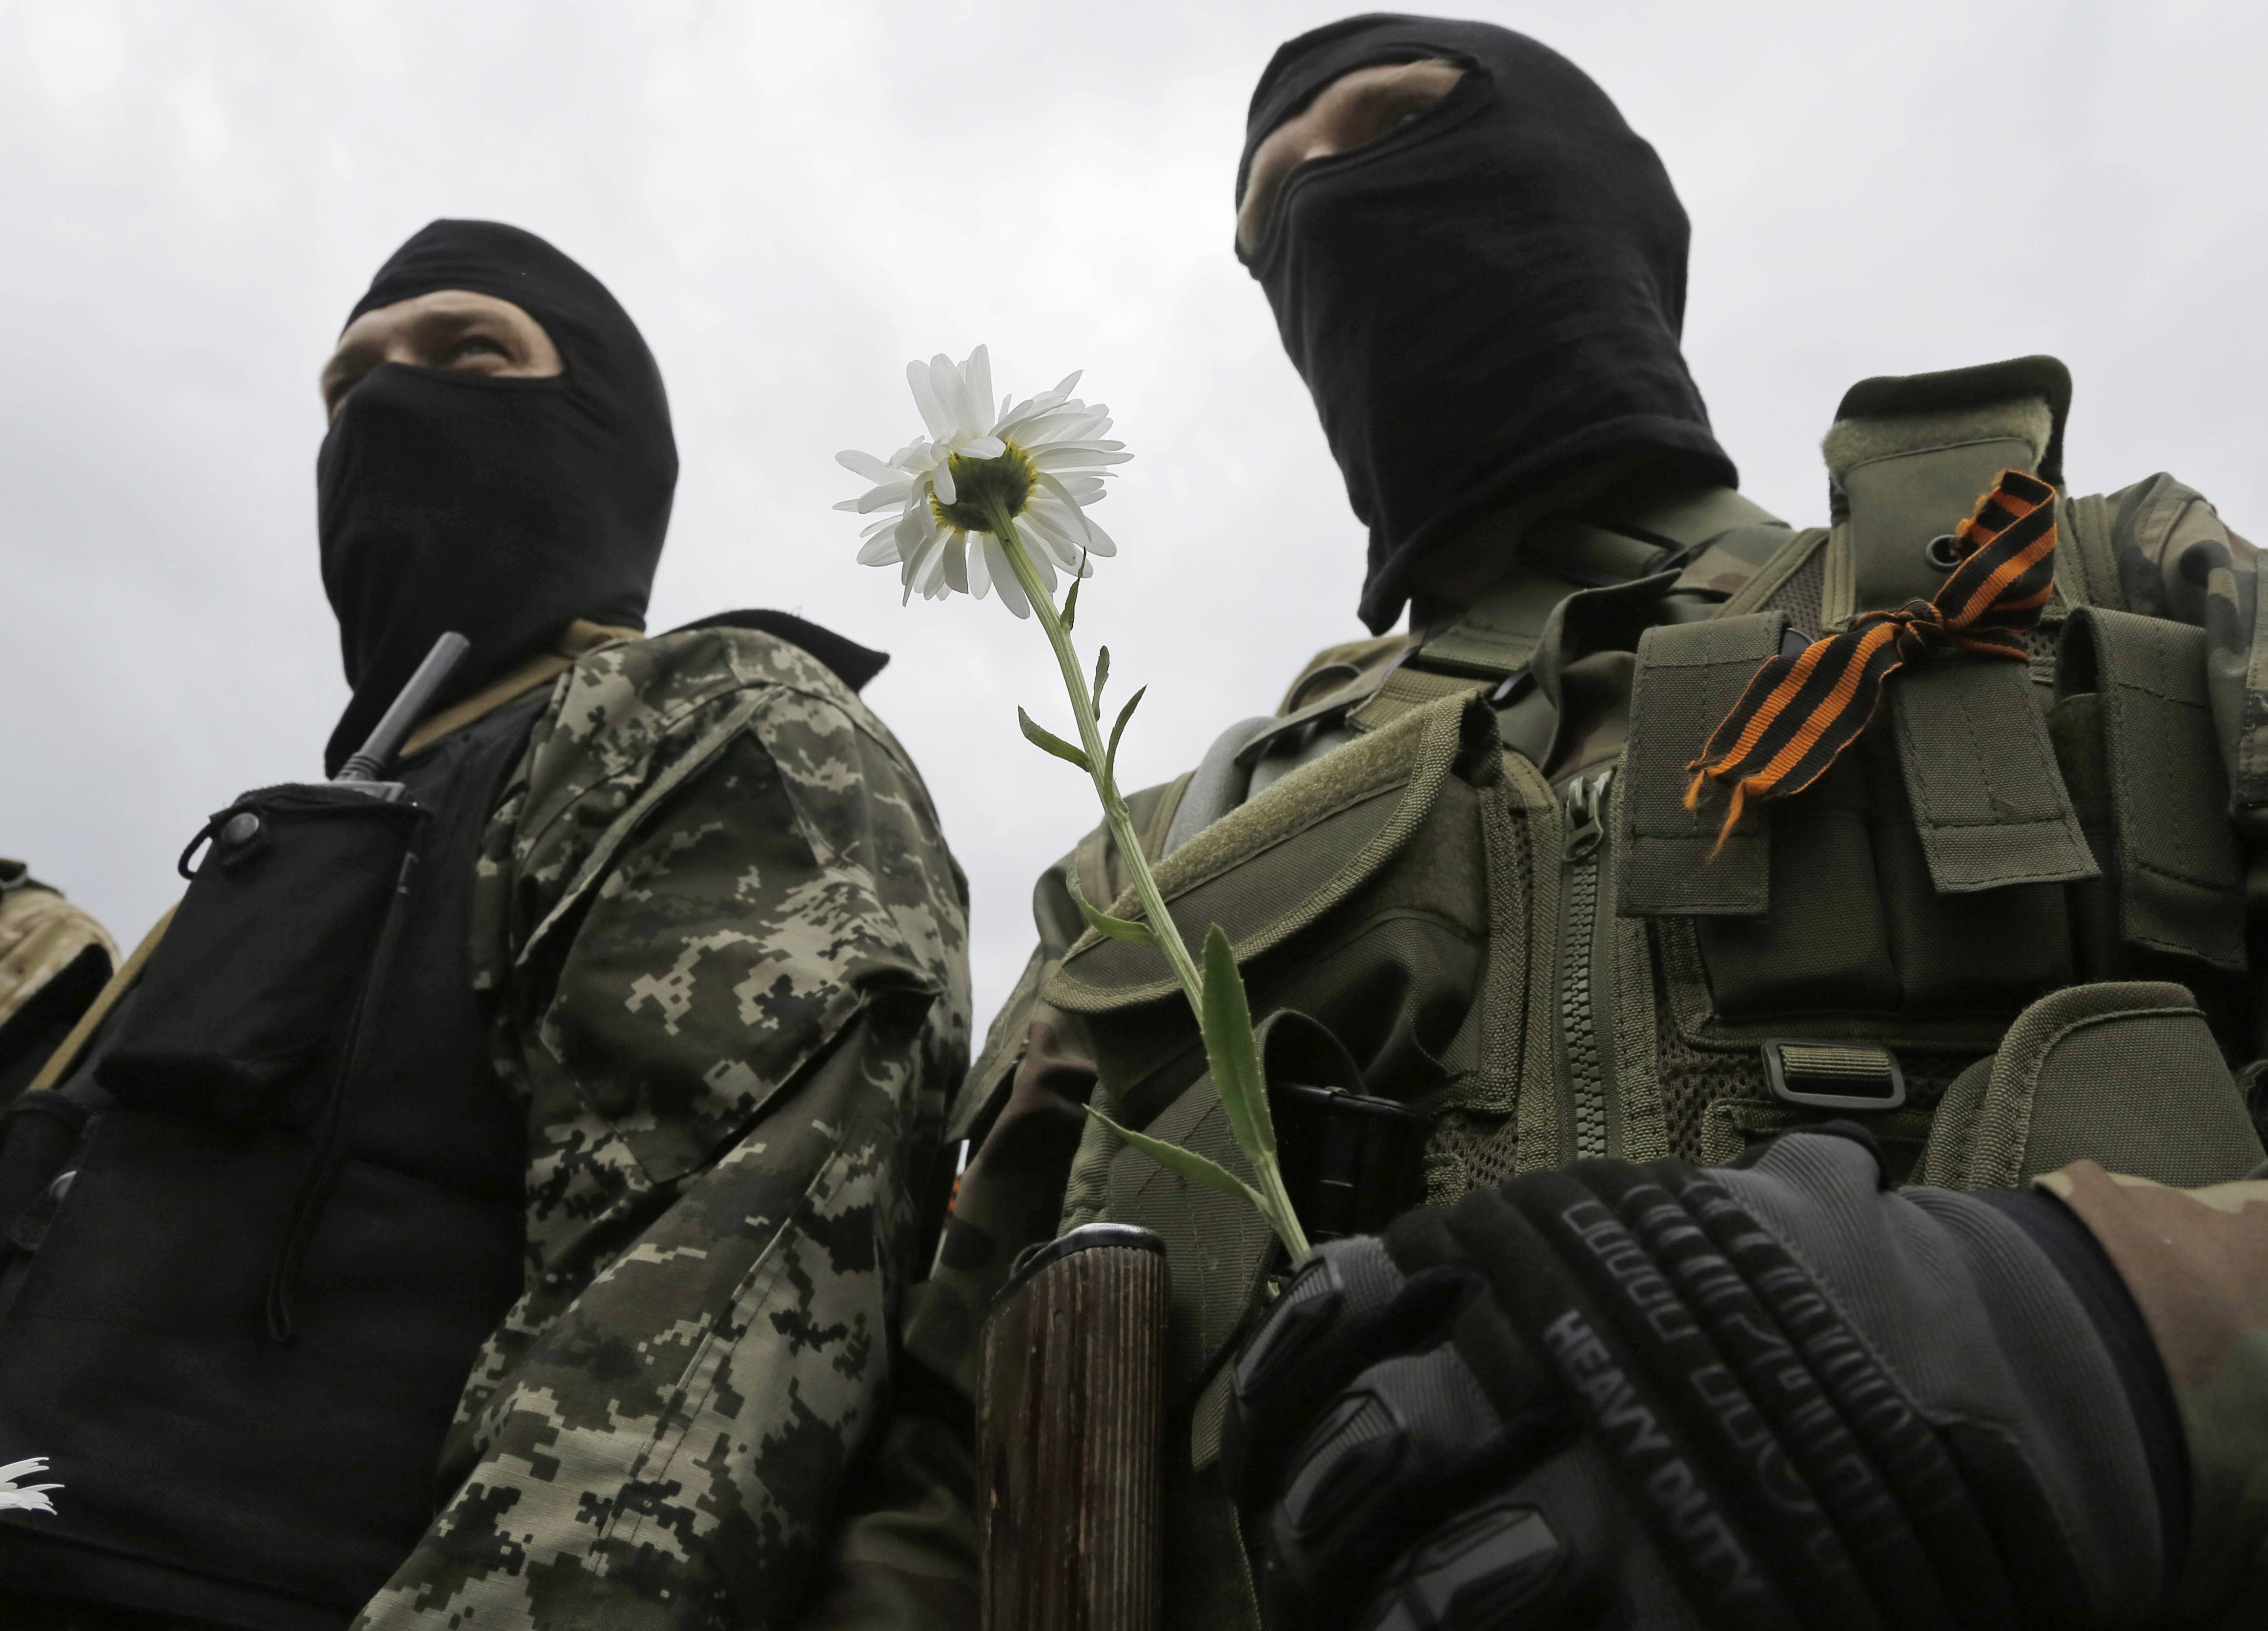 A pro-Russian fighter holds a flower Saturday after taking an oath in Donetsk, eastern Ukraine. Ukrainian President Petro Poroshenko ordered his forces to cease-fire Friday and halt military operations for a week.